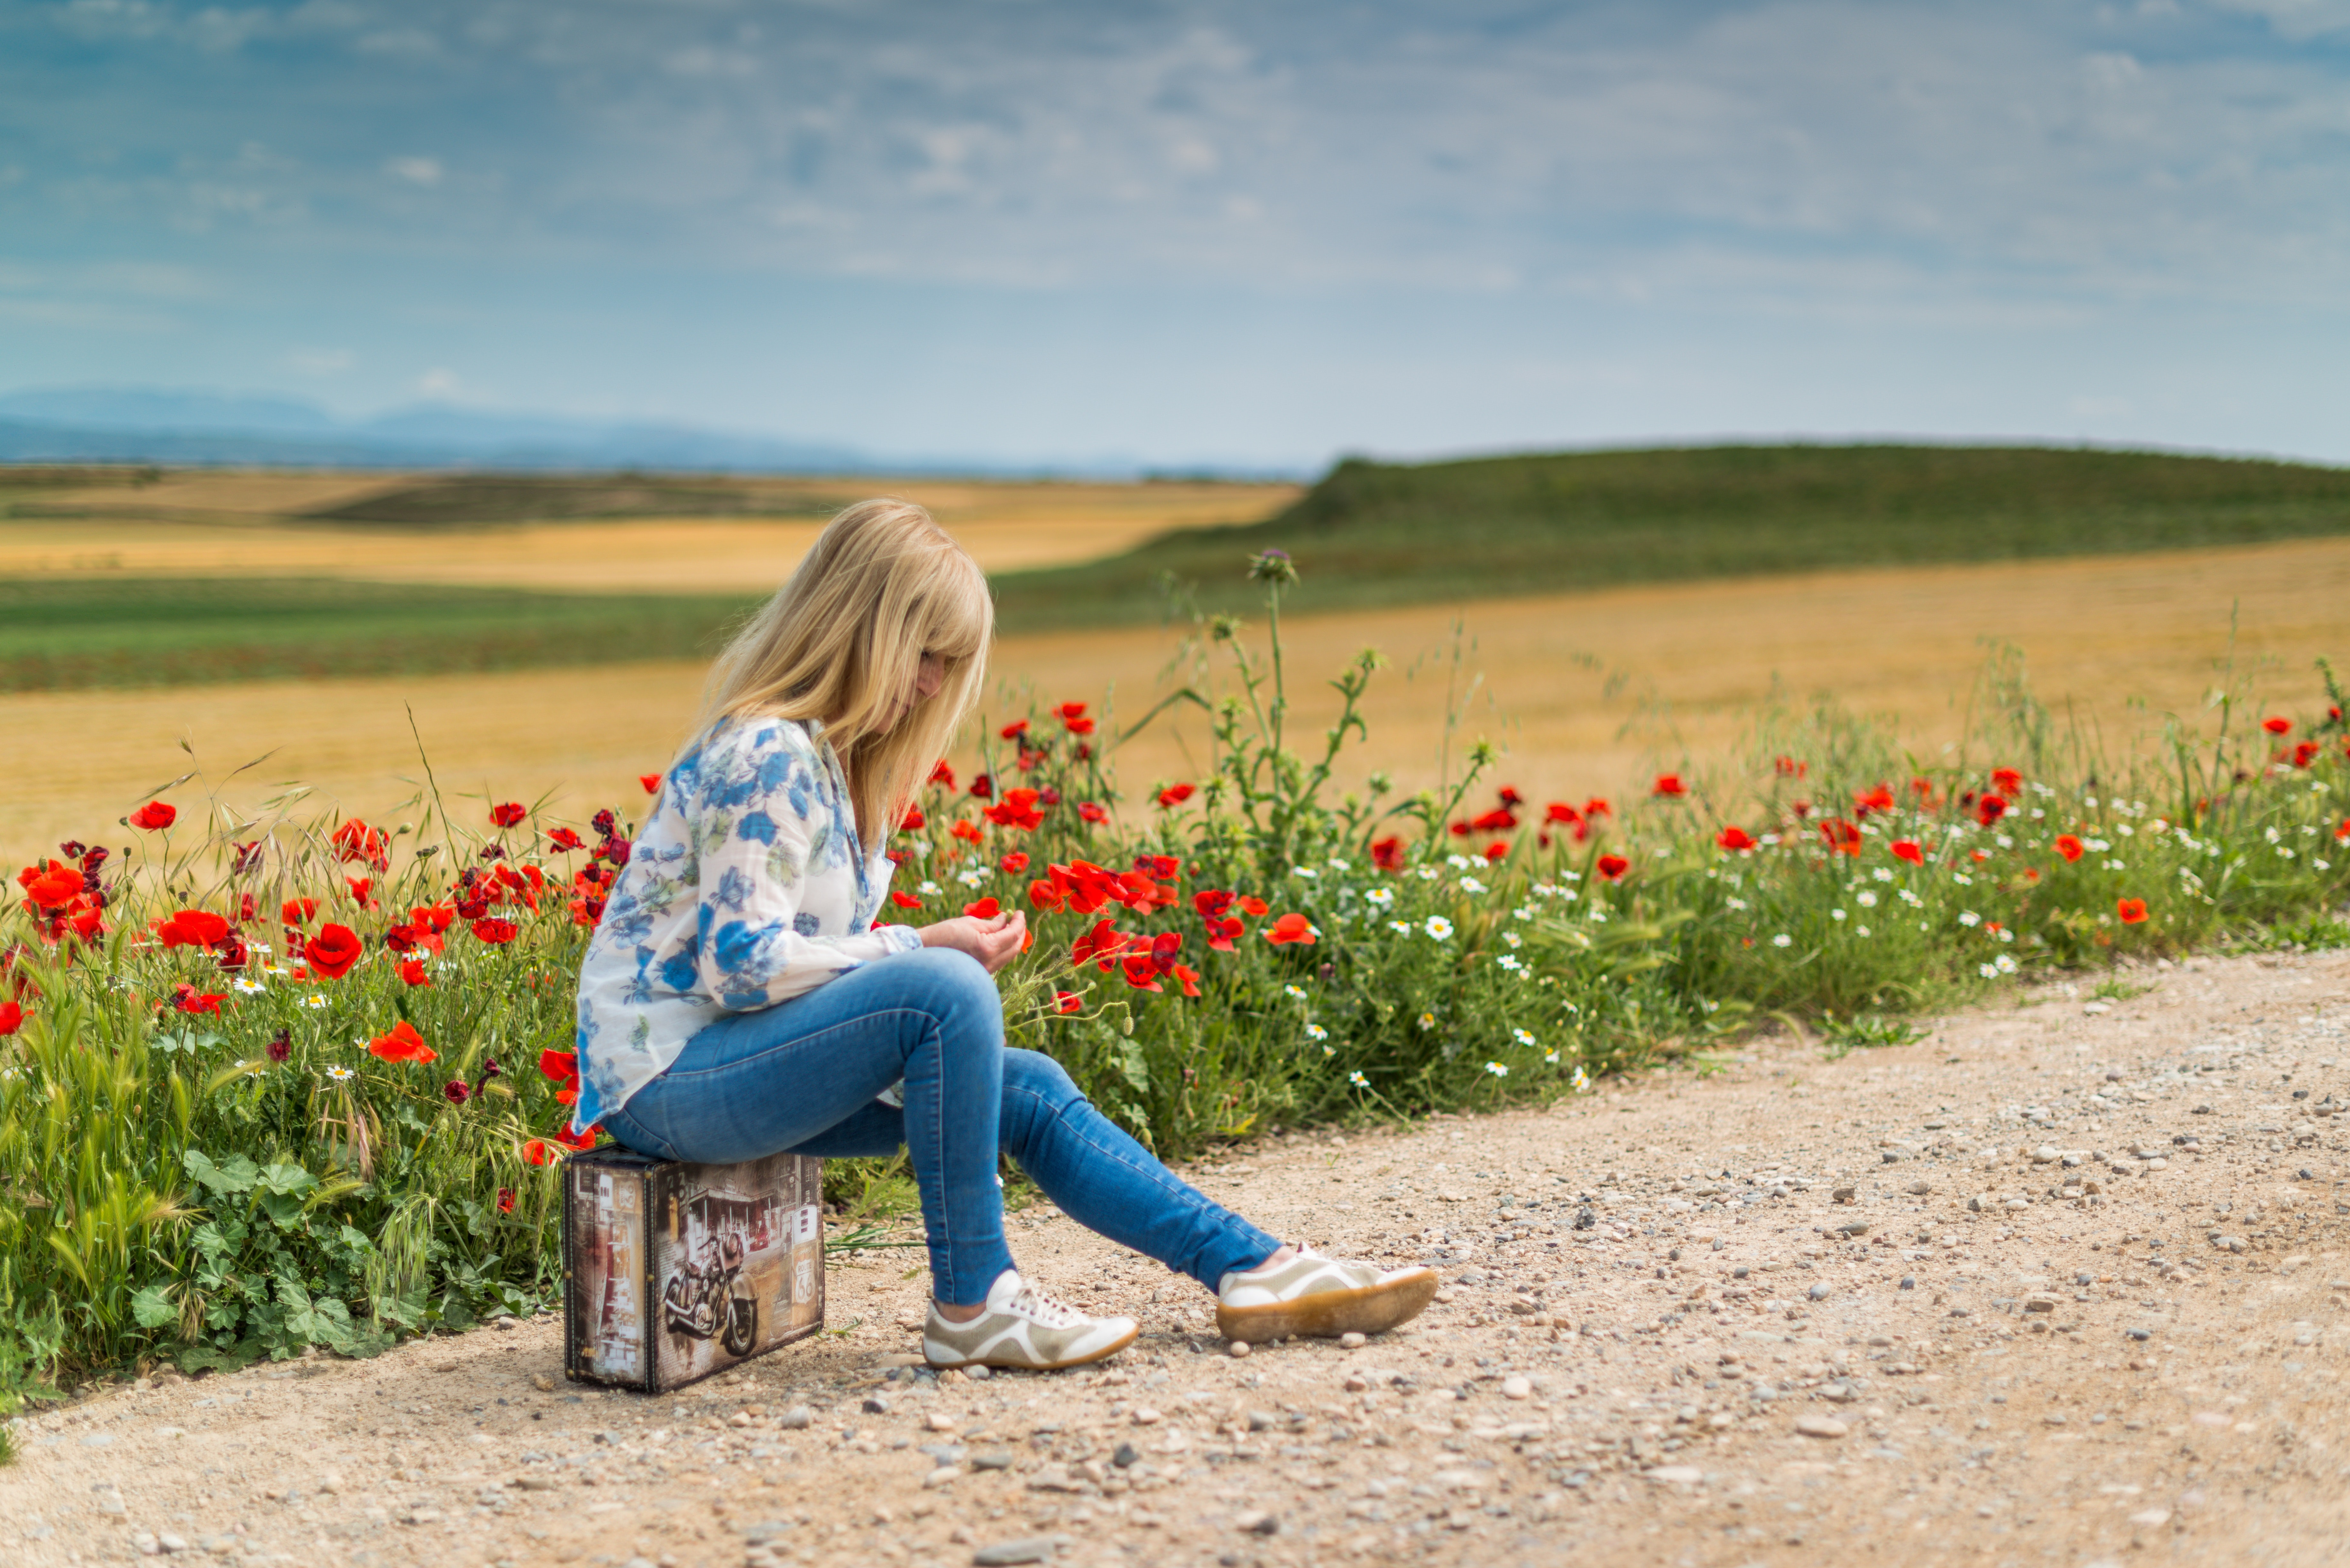 Girl near red petal flowers at daytime photo